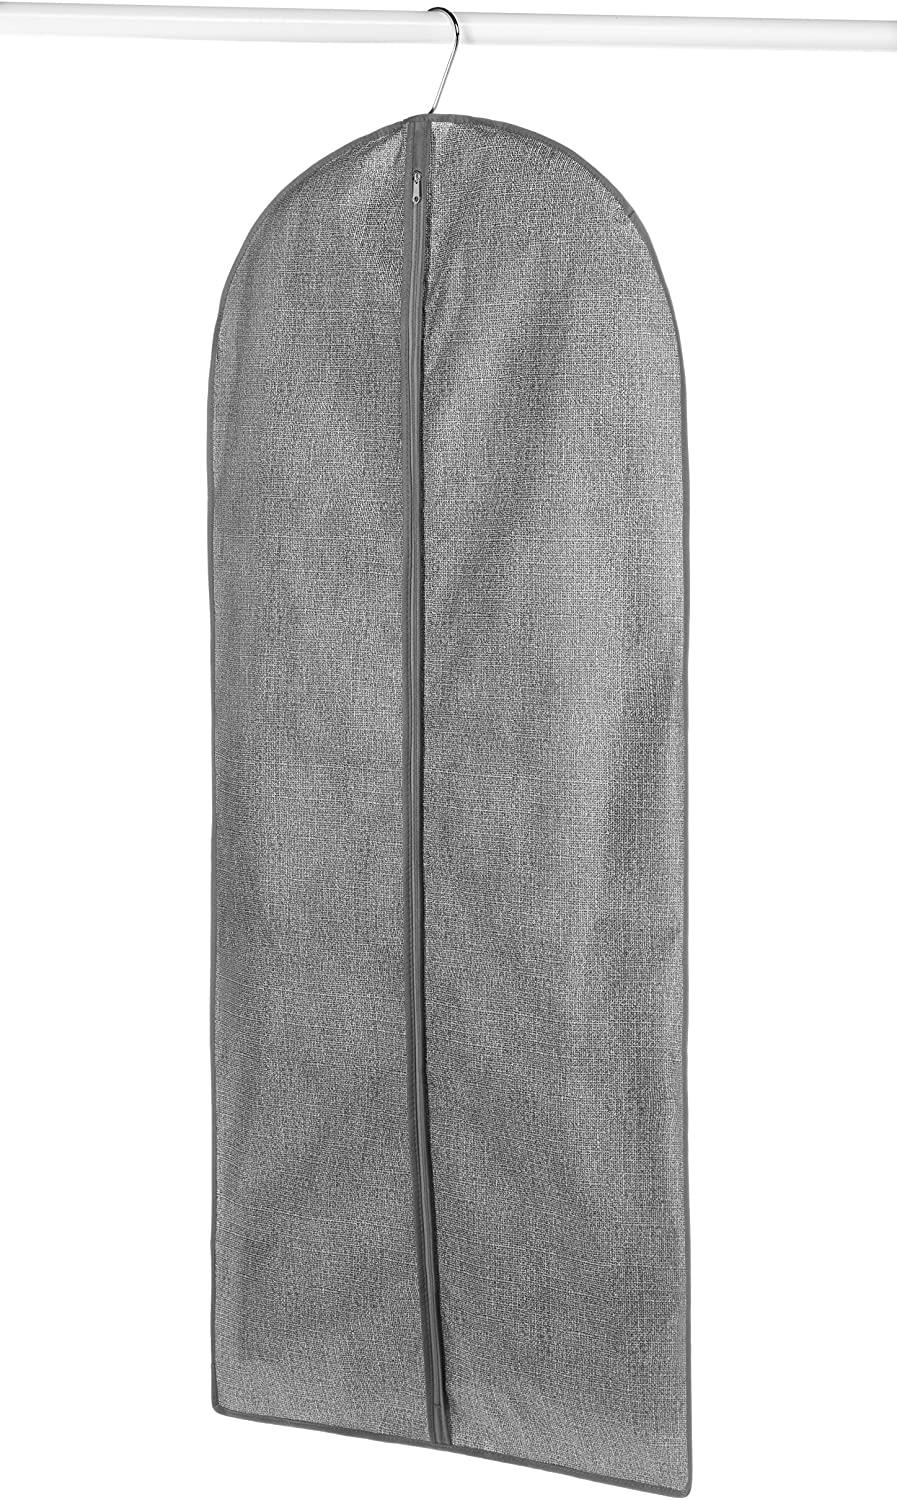 Whitmor CrossHatch Hanging Closet Garment Bag